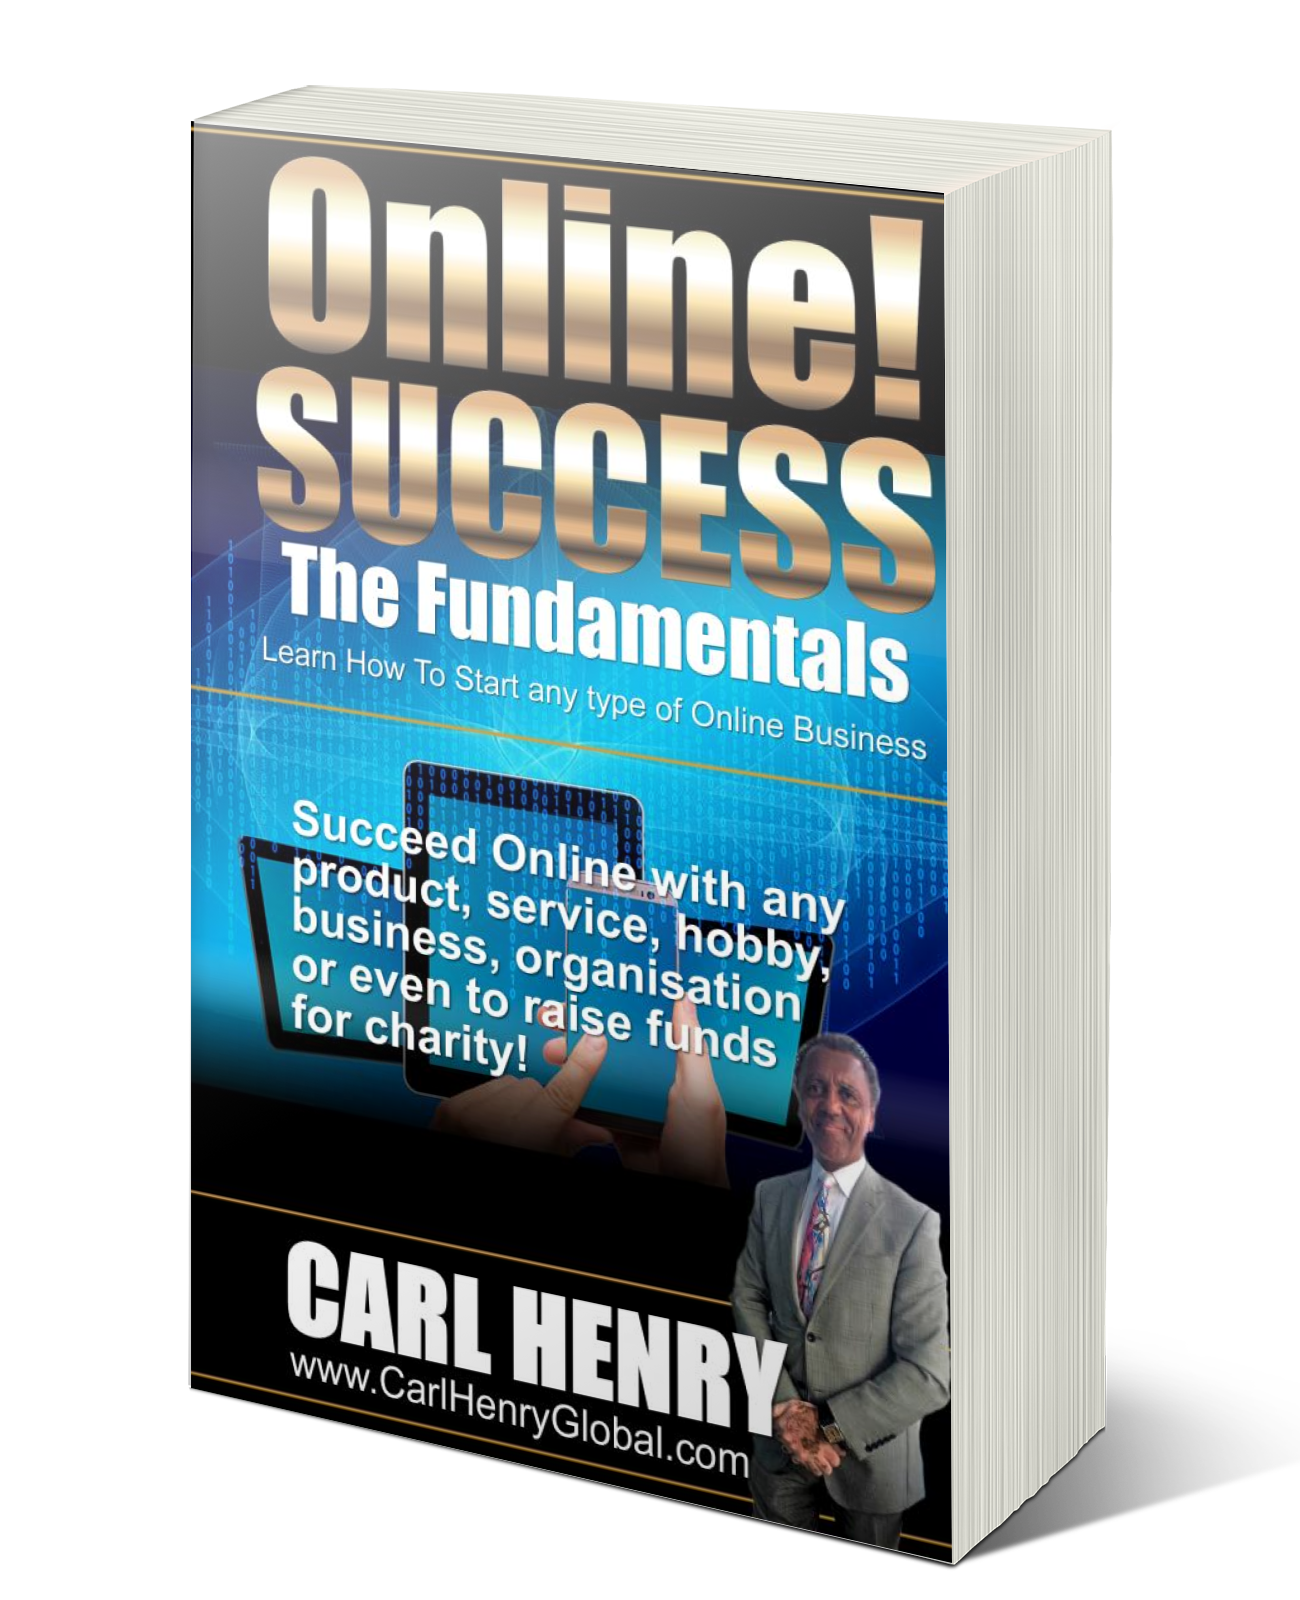 Carl-Henry-ONLINE-SUCCESS-eBook-2-1300x1600.png